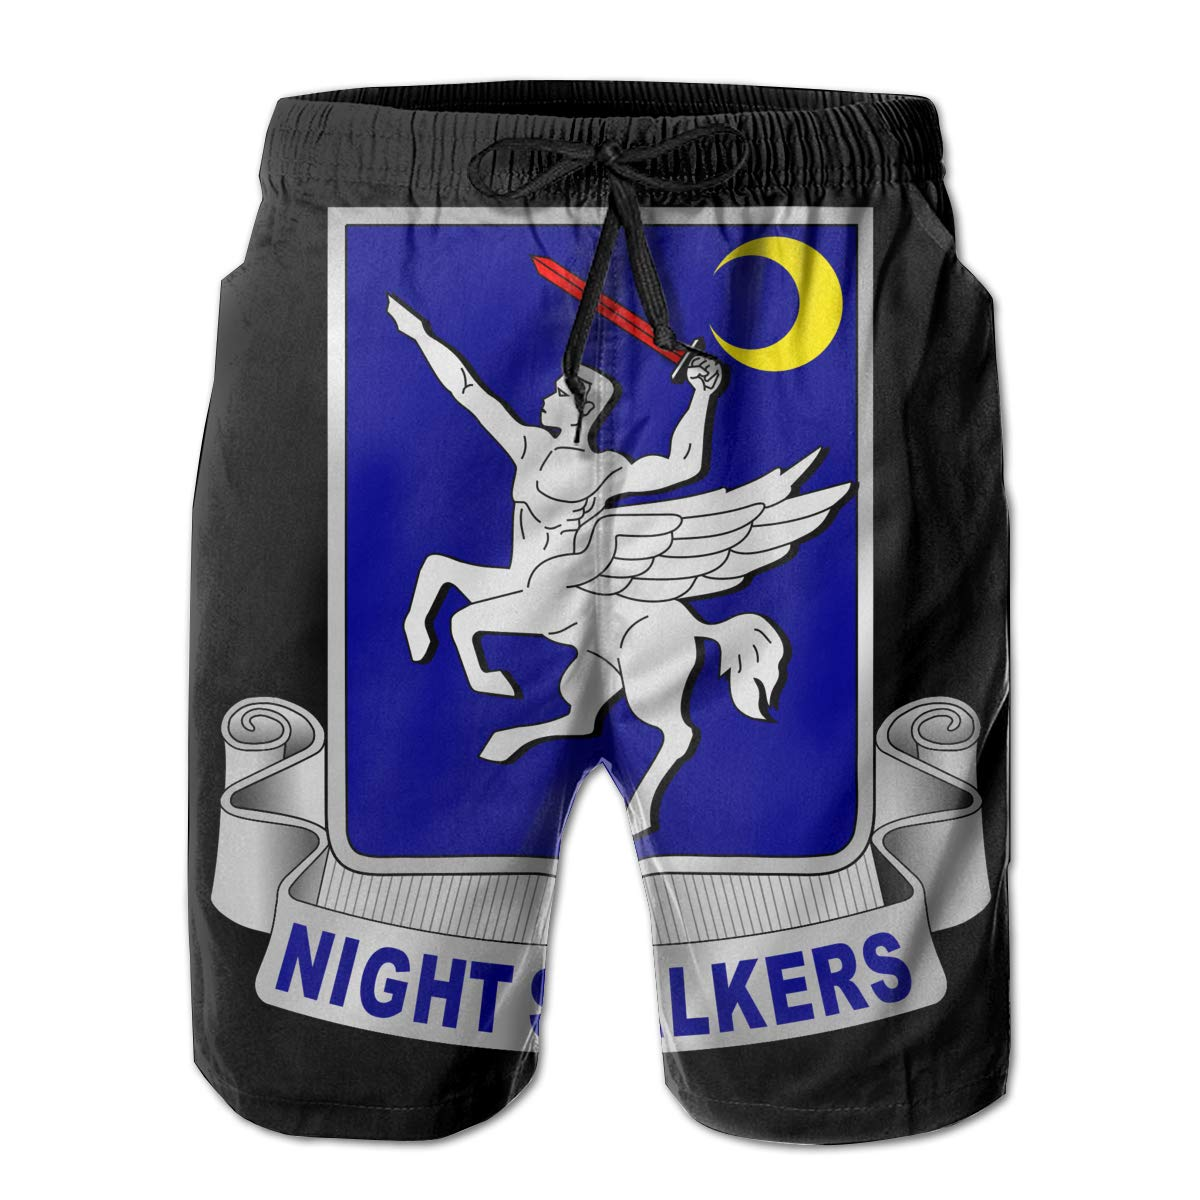 You Know And Good 160th Special Operations Aviation Regiment Mens Swim Trunks Bathing Suit Beach Shorts